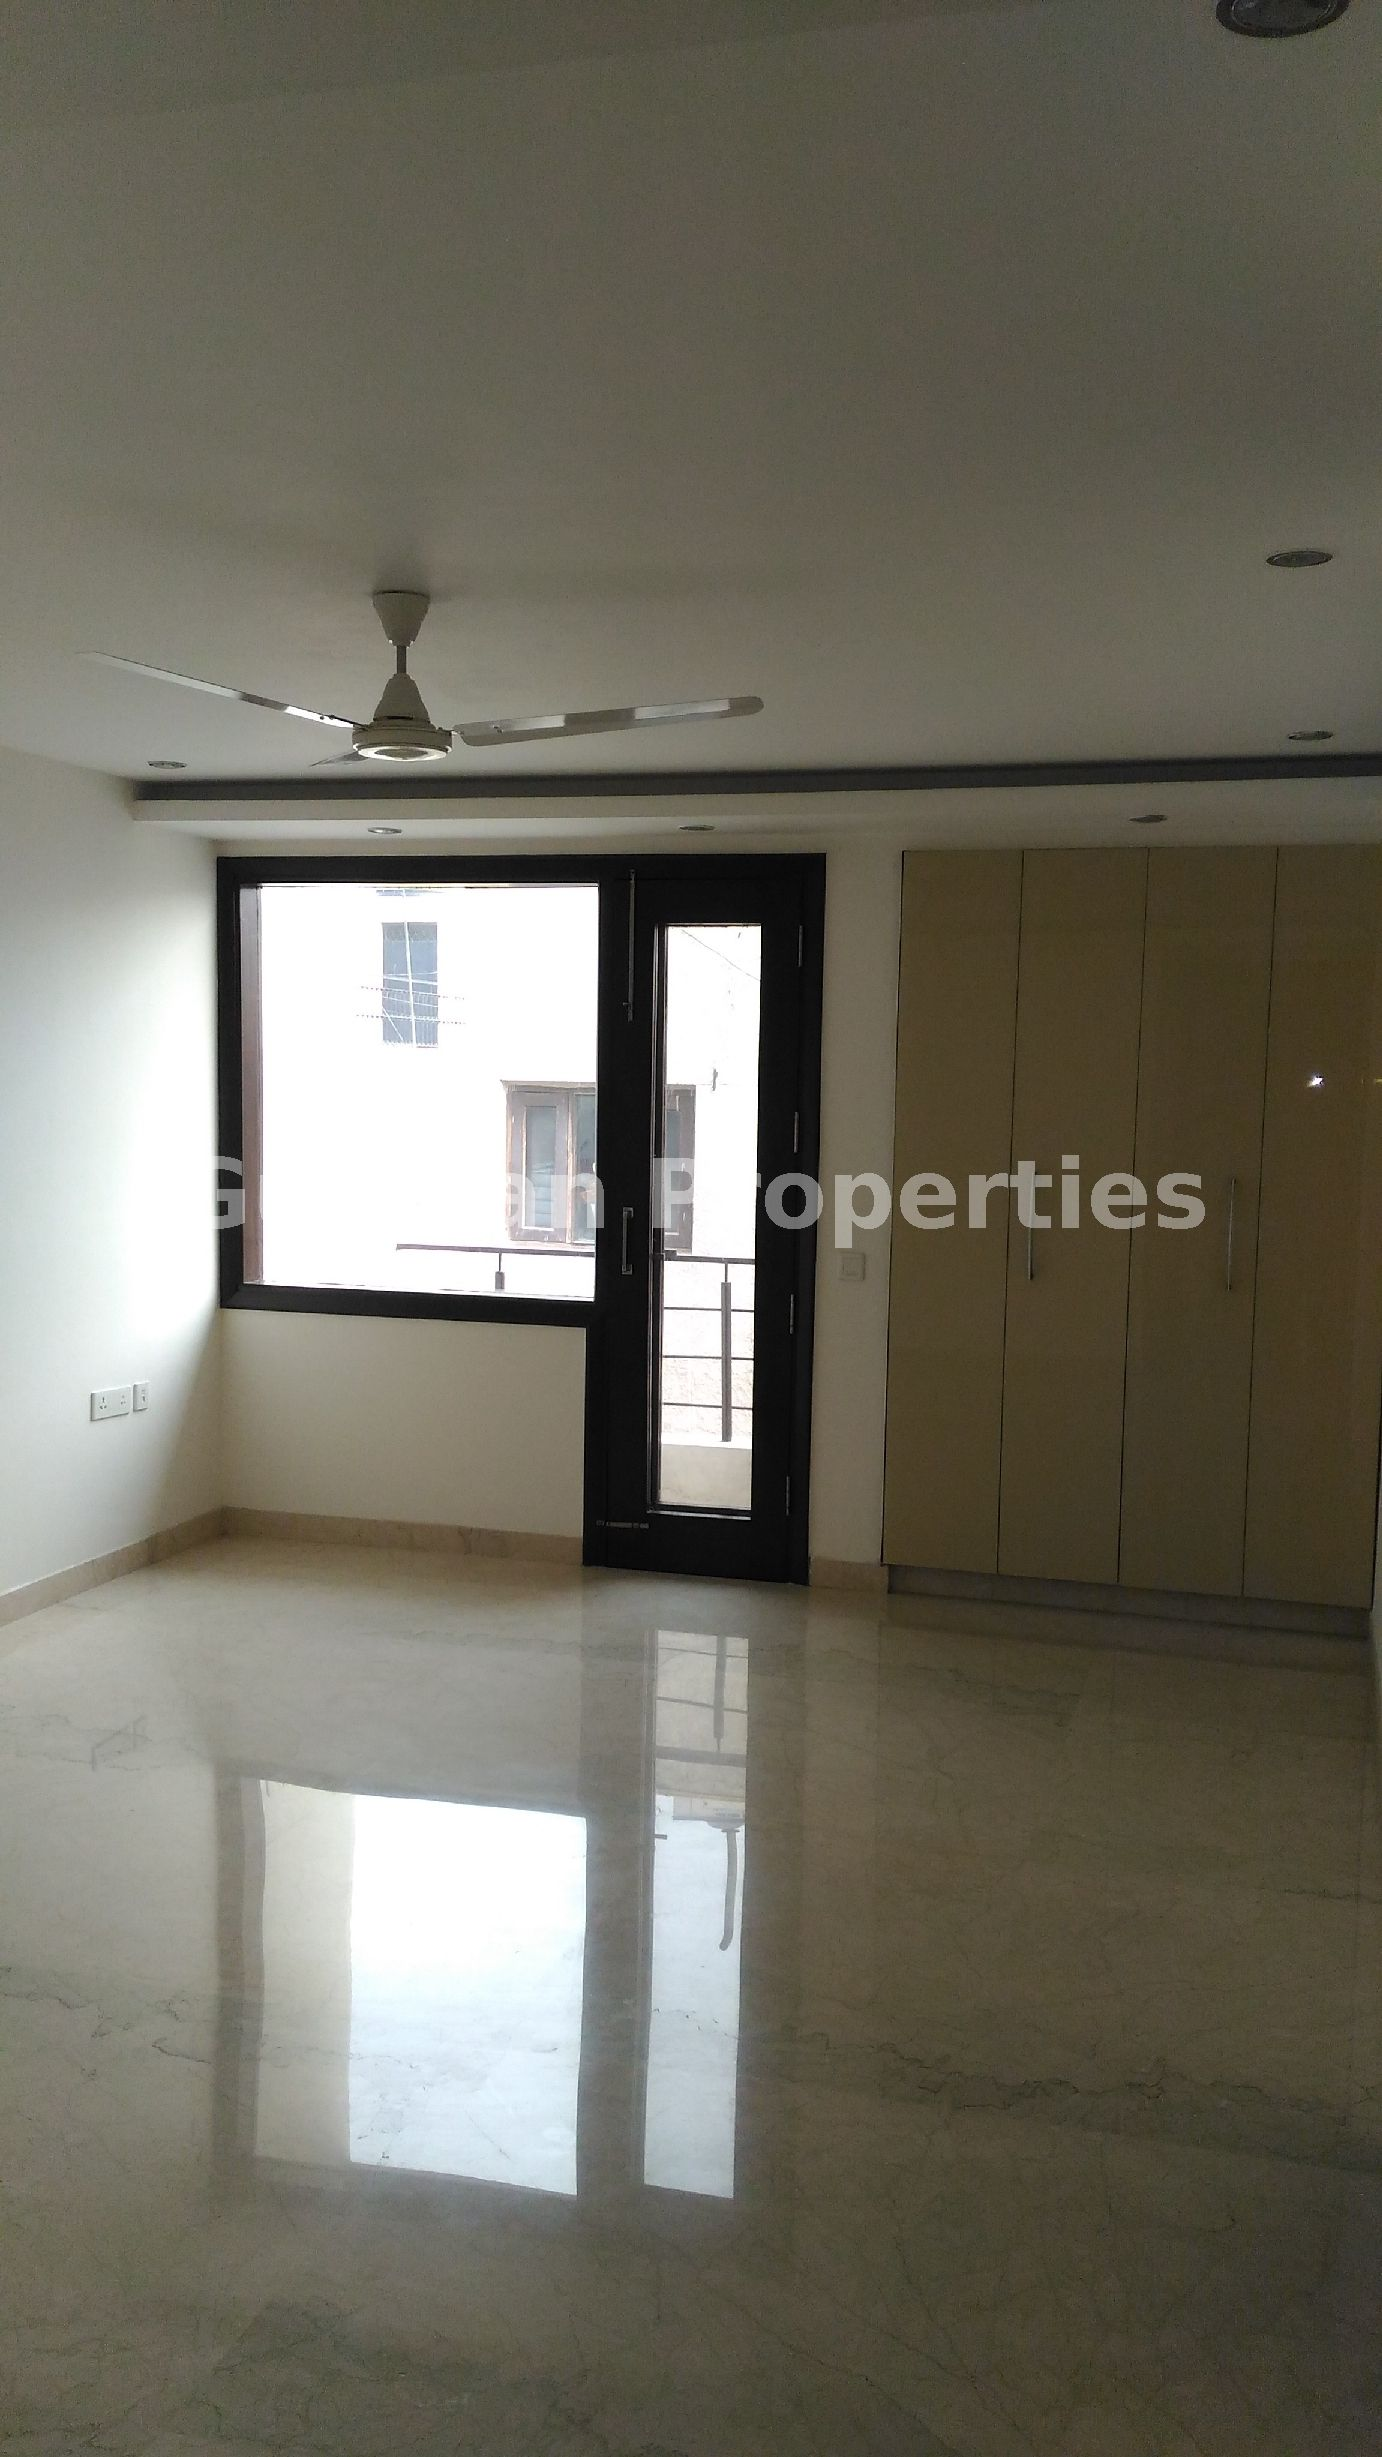 Flat For Rent 👉Location New Friends Colony ,New Delhi